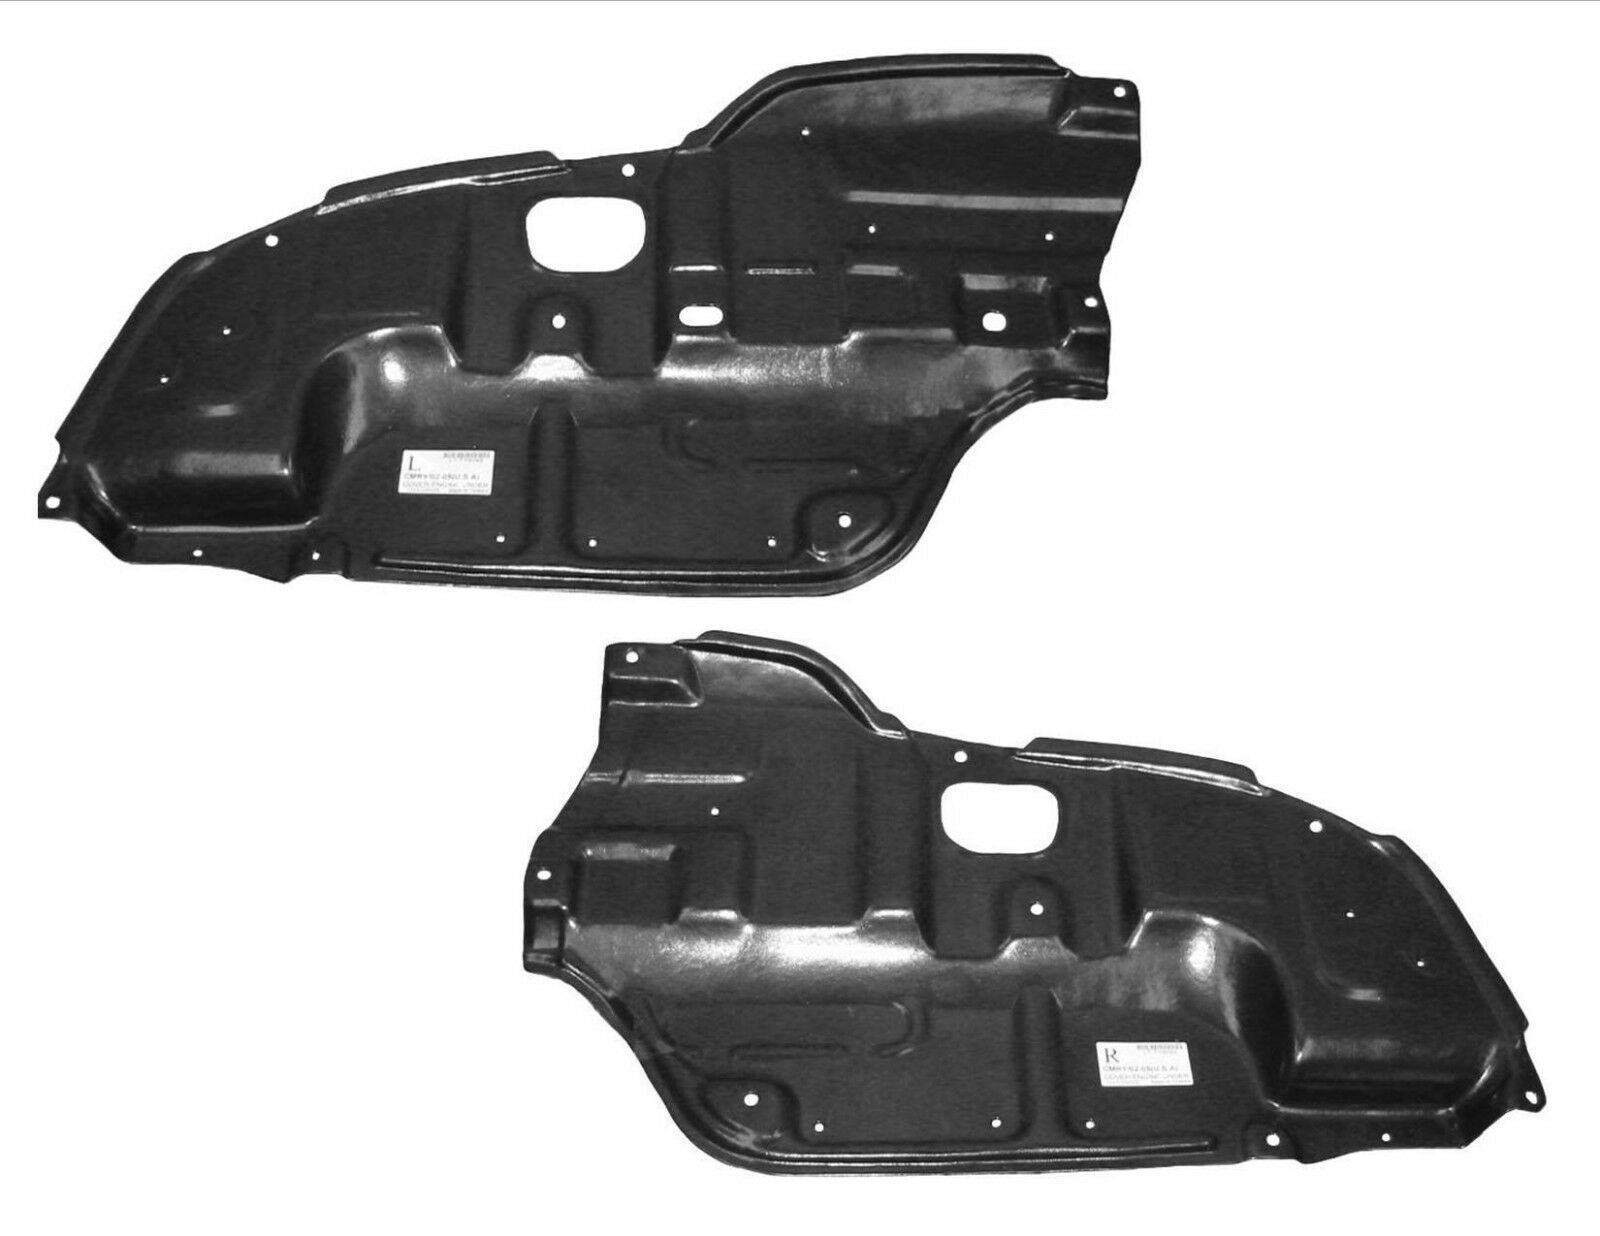 Make Auto Parts Manufacturing Set of 2 Driver Left /& Passenger Right Side Undercar Engine Splash Shields for Toyota Camry 2002 2003 2004 2005 2006 TO1228106 TO1228107